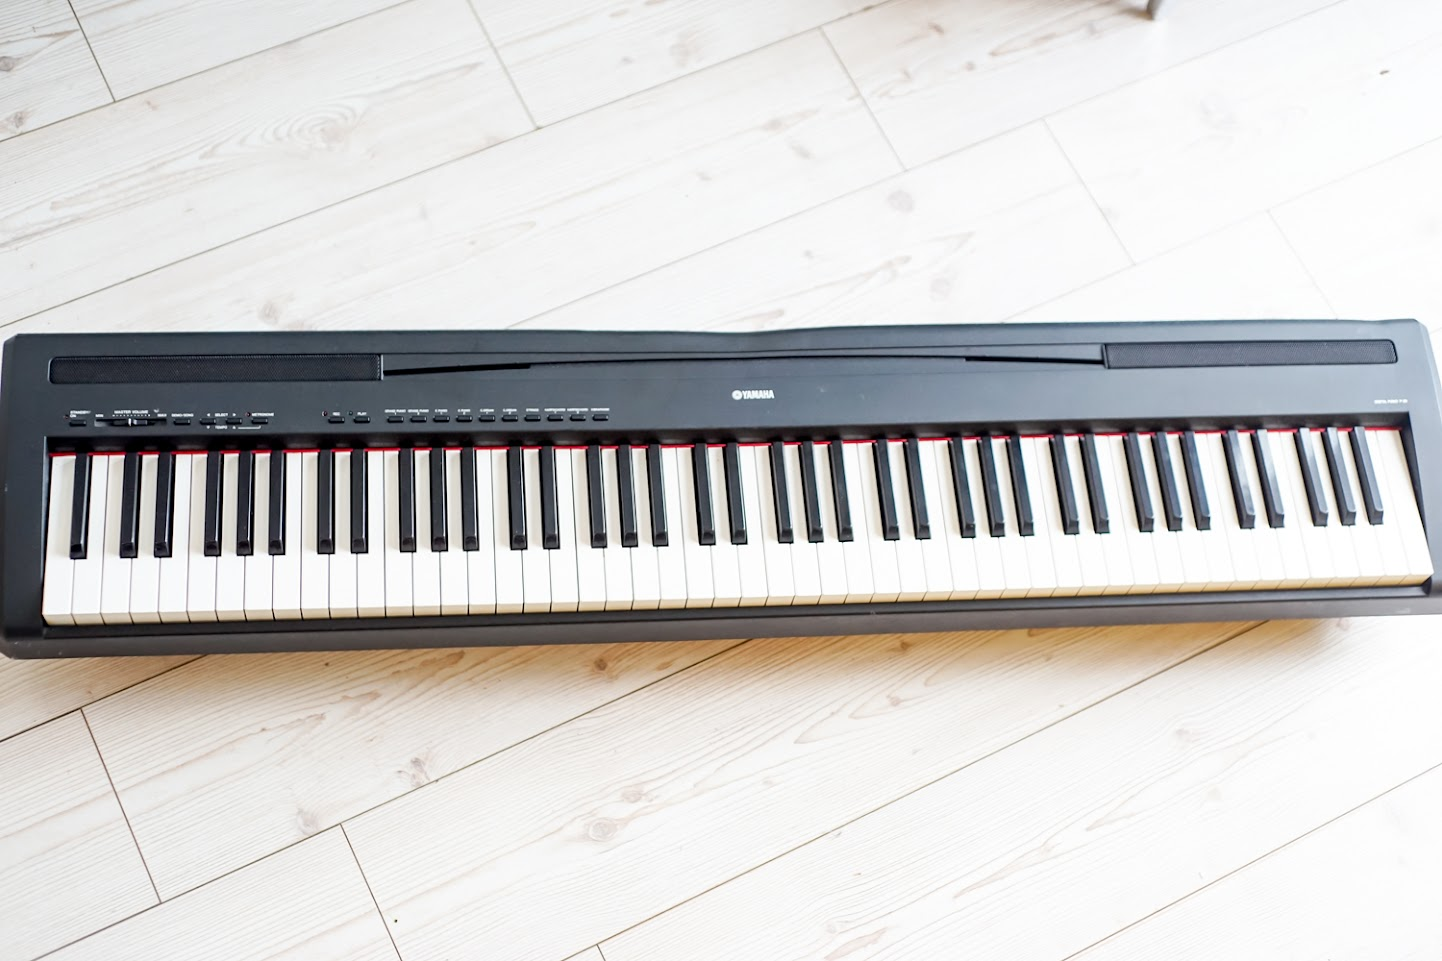 Yamaha p85 stage digital full size piano 88 key weighted for Yamaha p85 contemporary digital piano